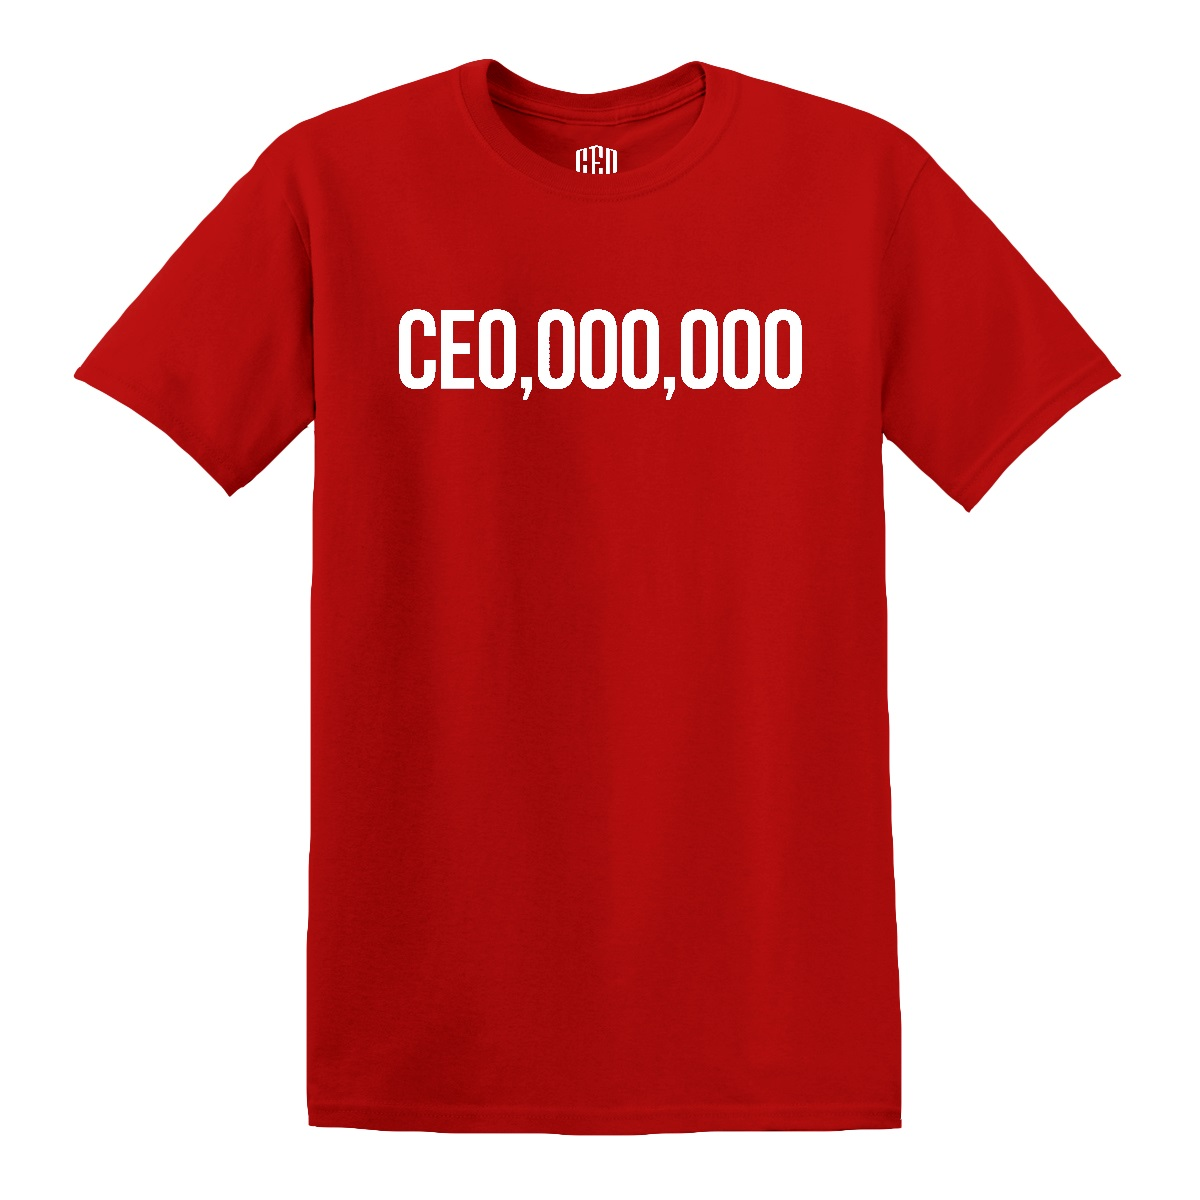 $CE0,000,000 T-Shirt [Red]